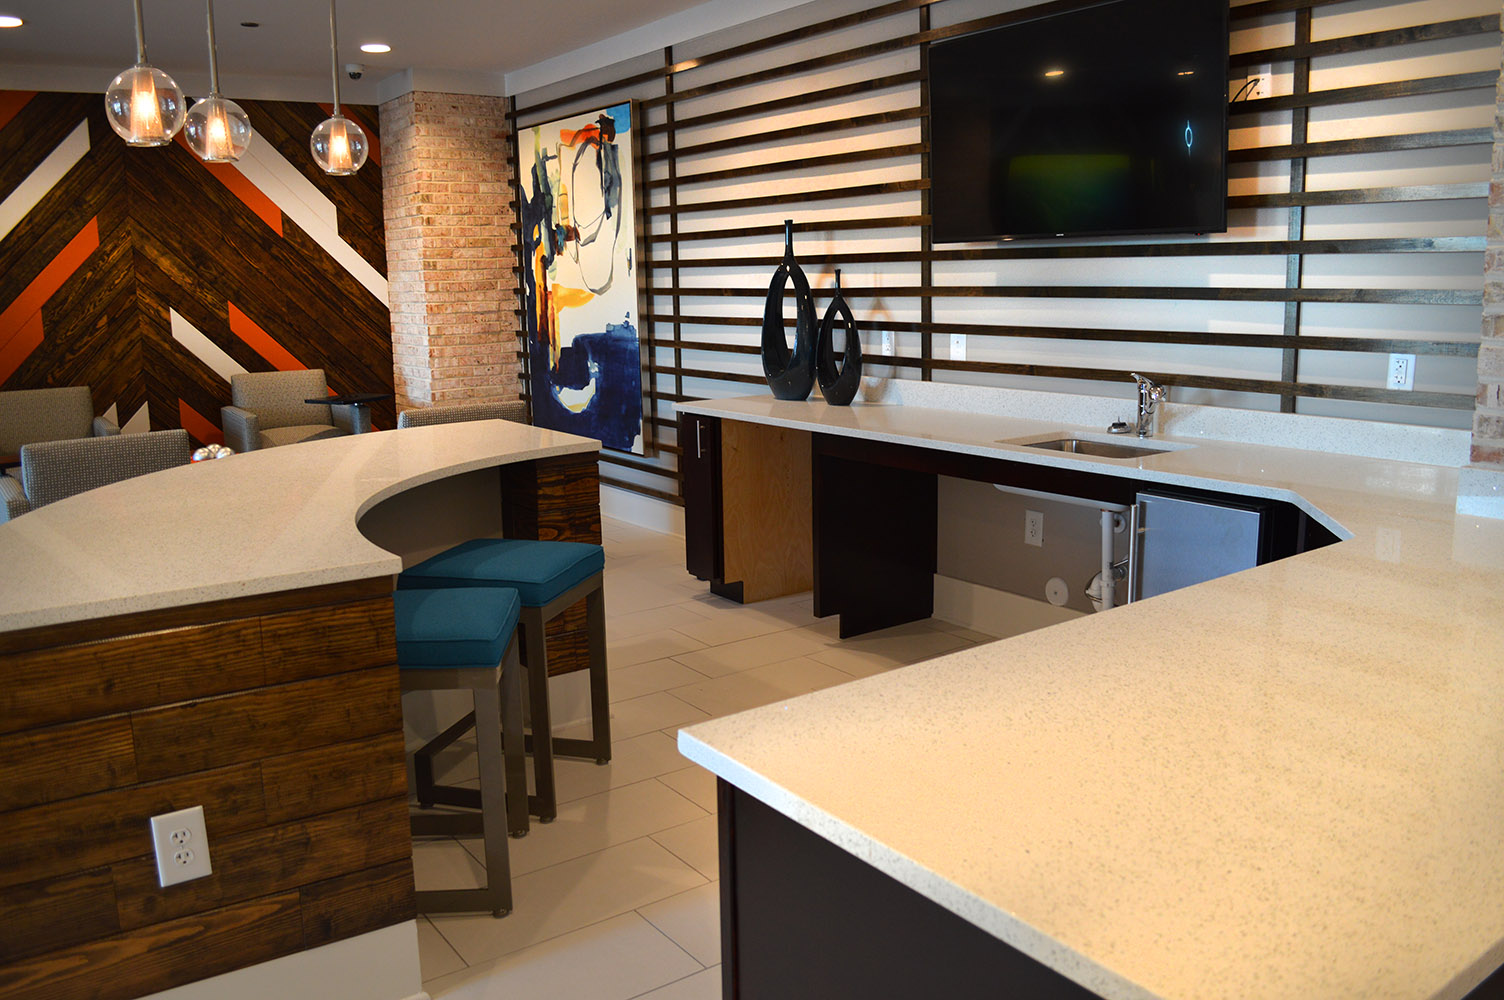 Link apartments has a plush commons area that features beautiful White quartz countertops bringing an airiness to the area